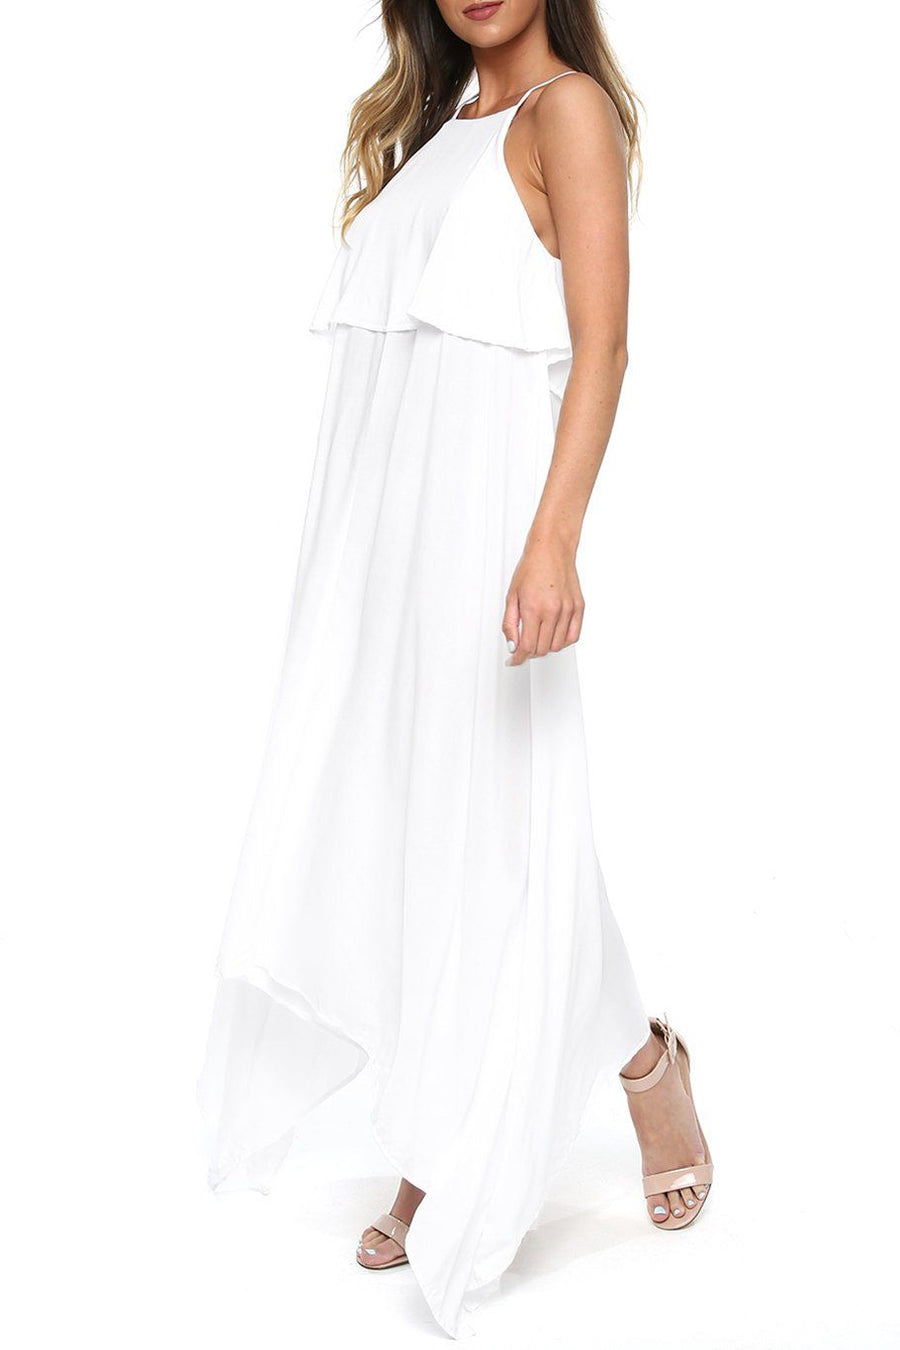 Maui Swing Dress - White - Shore